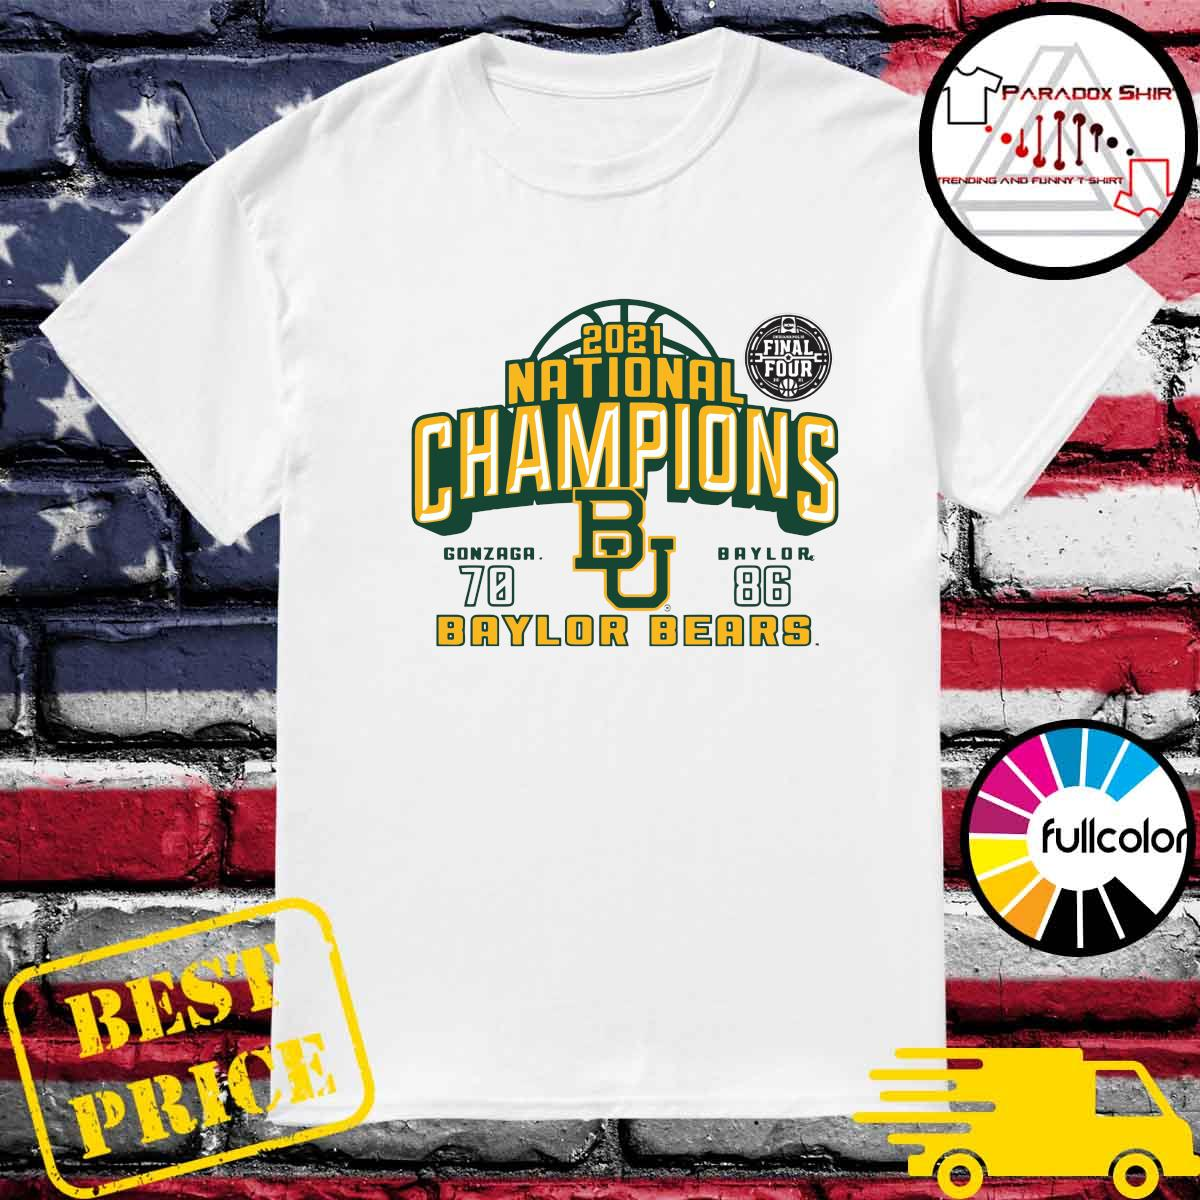 Baylor Bears 2021 NCAA Men's Basketball National Champions With Gonzaga 70 Vs Baylor 86 T-shirt